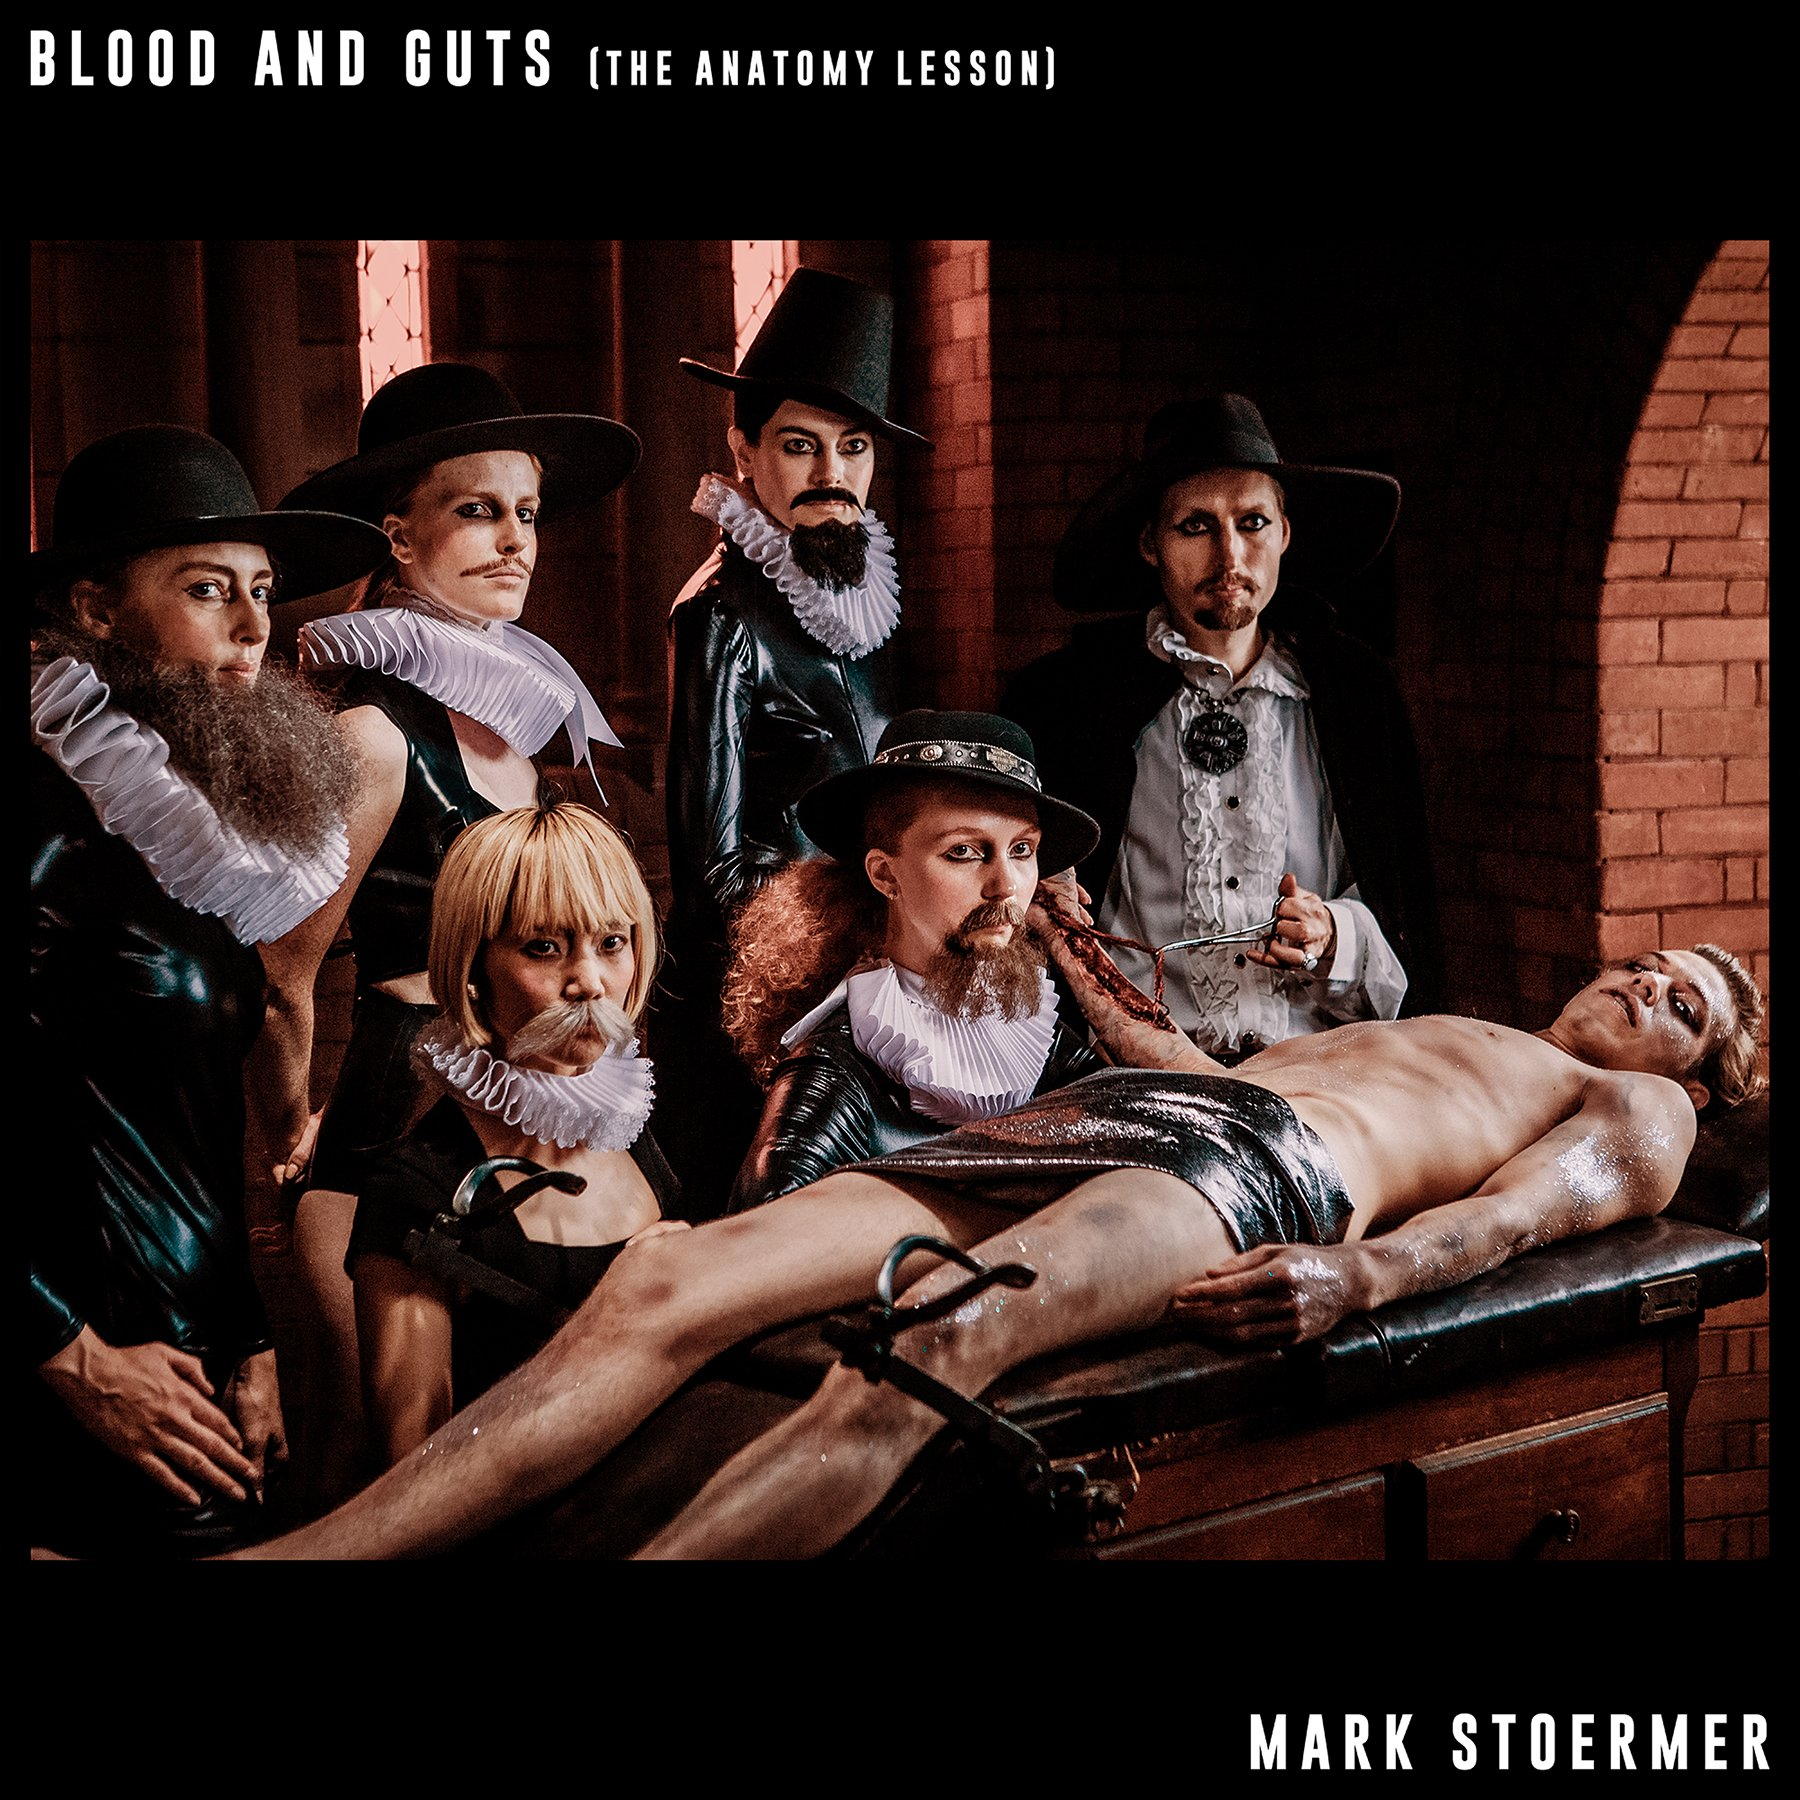 Il video di Blood and Guts (The Anatomy Lesson)